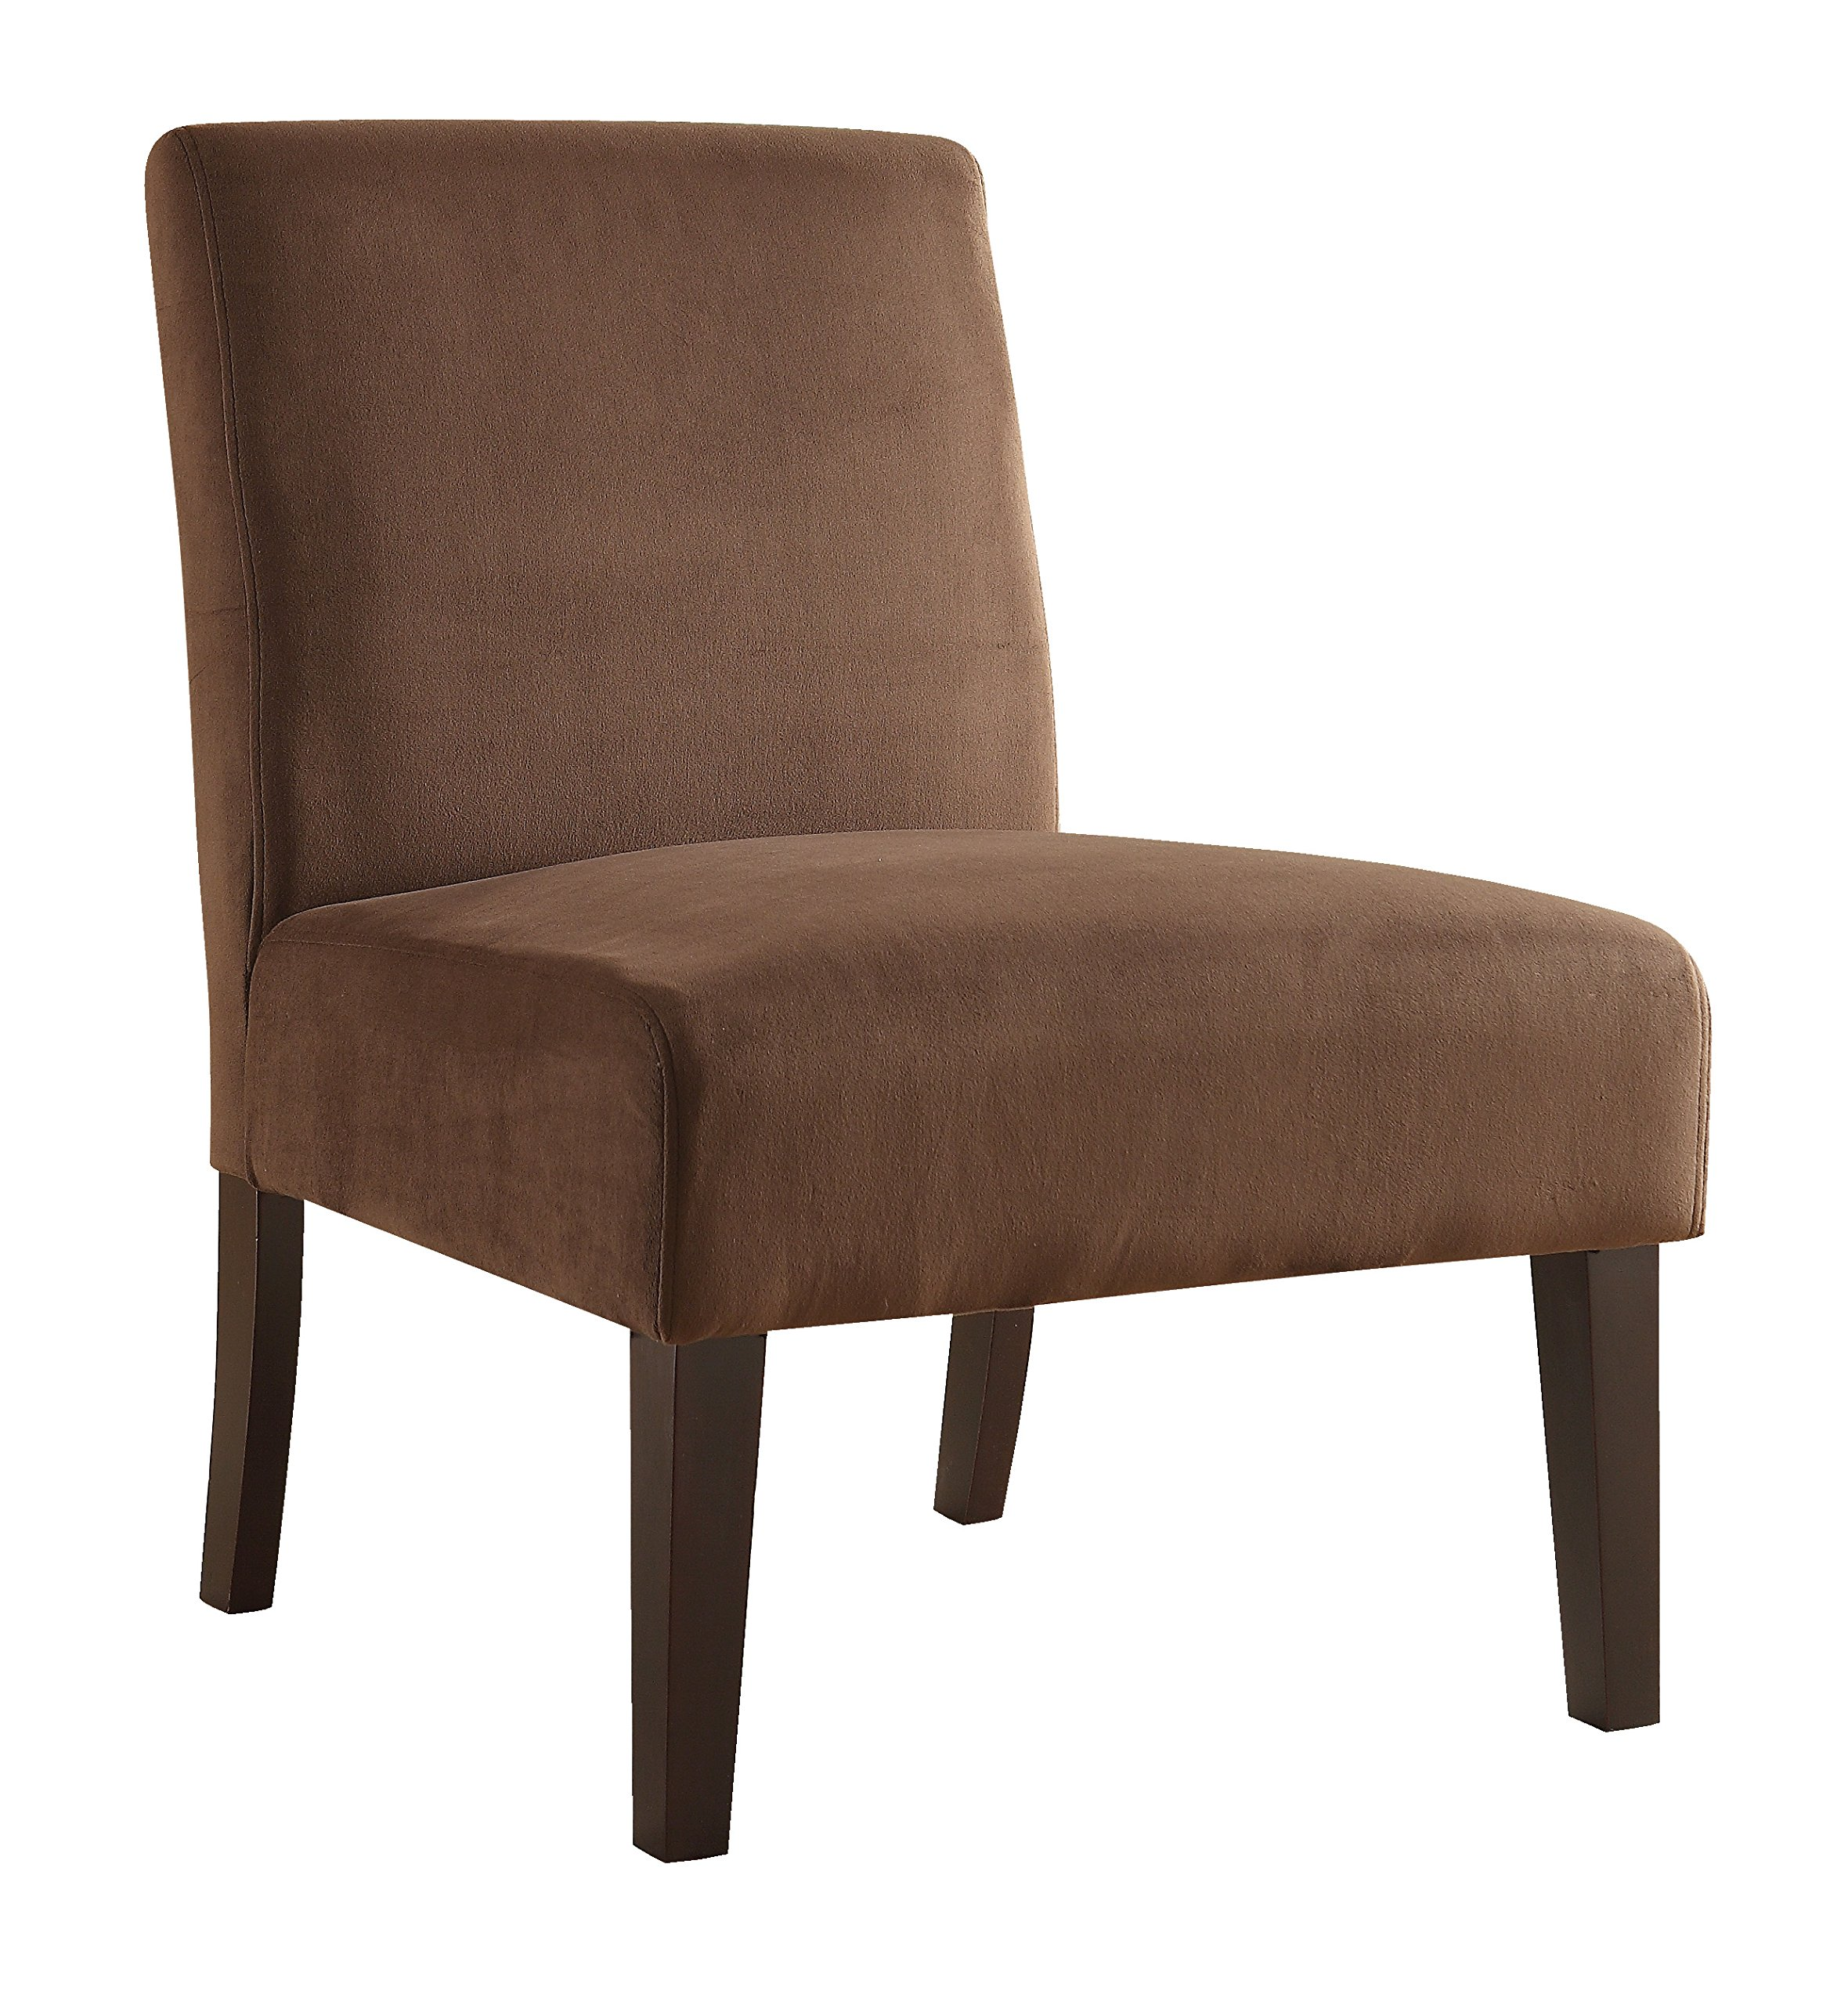 AVE SIX Laguna Accent Chair with Espresso Finish Solid Wood Legs, Chocolate Velvet Fabric